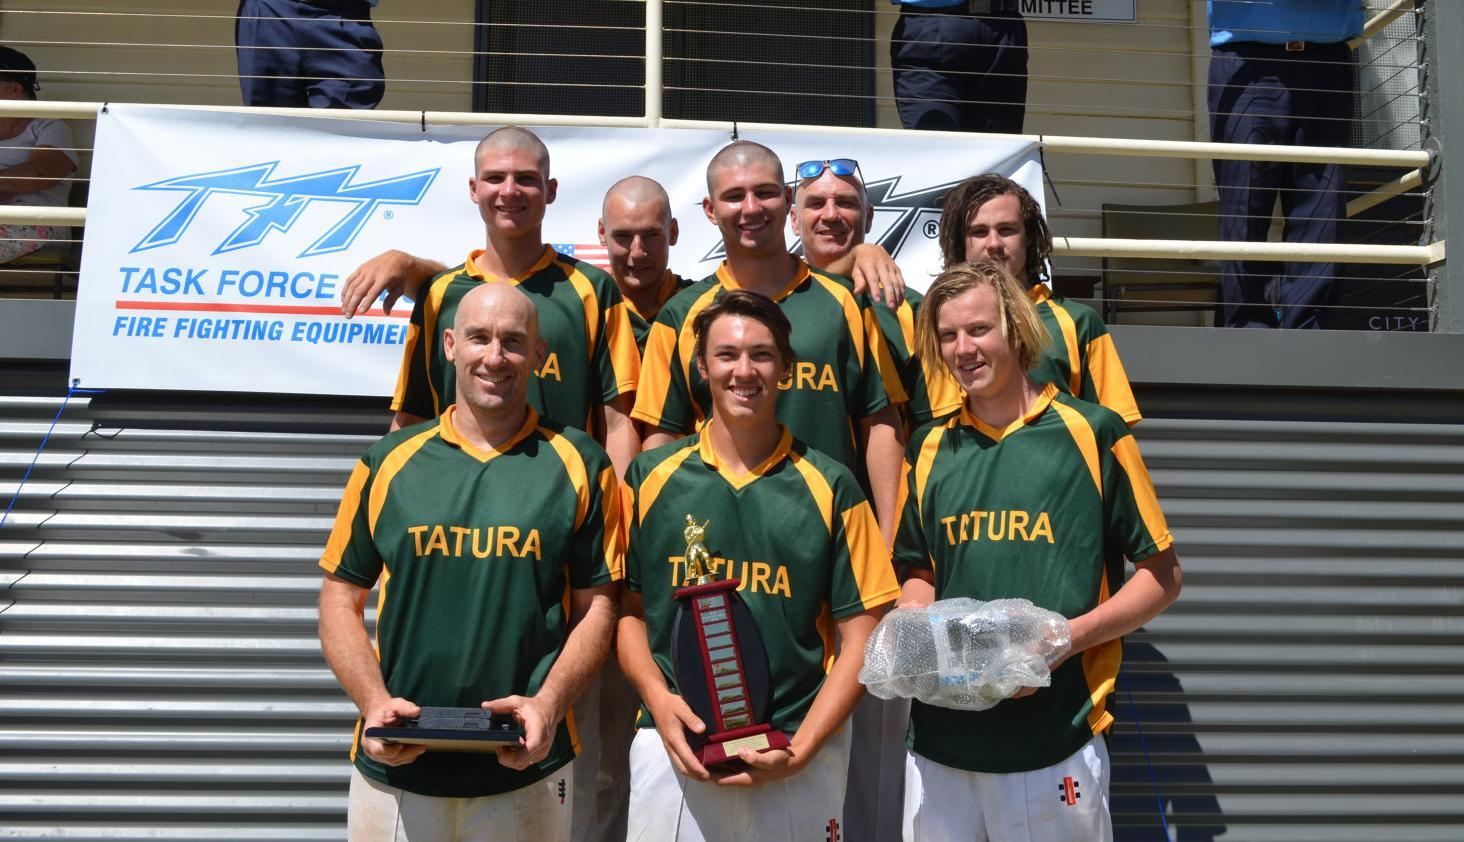 Tatura tastes ultimate glory